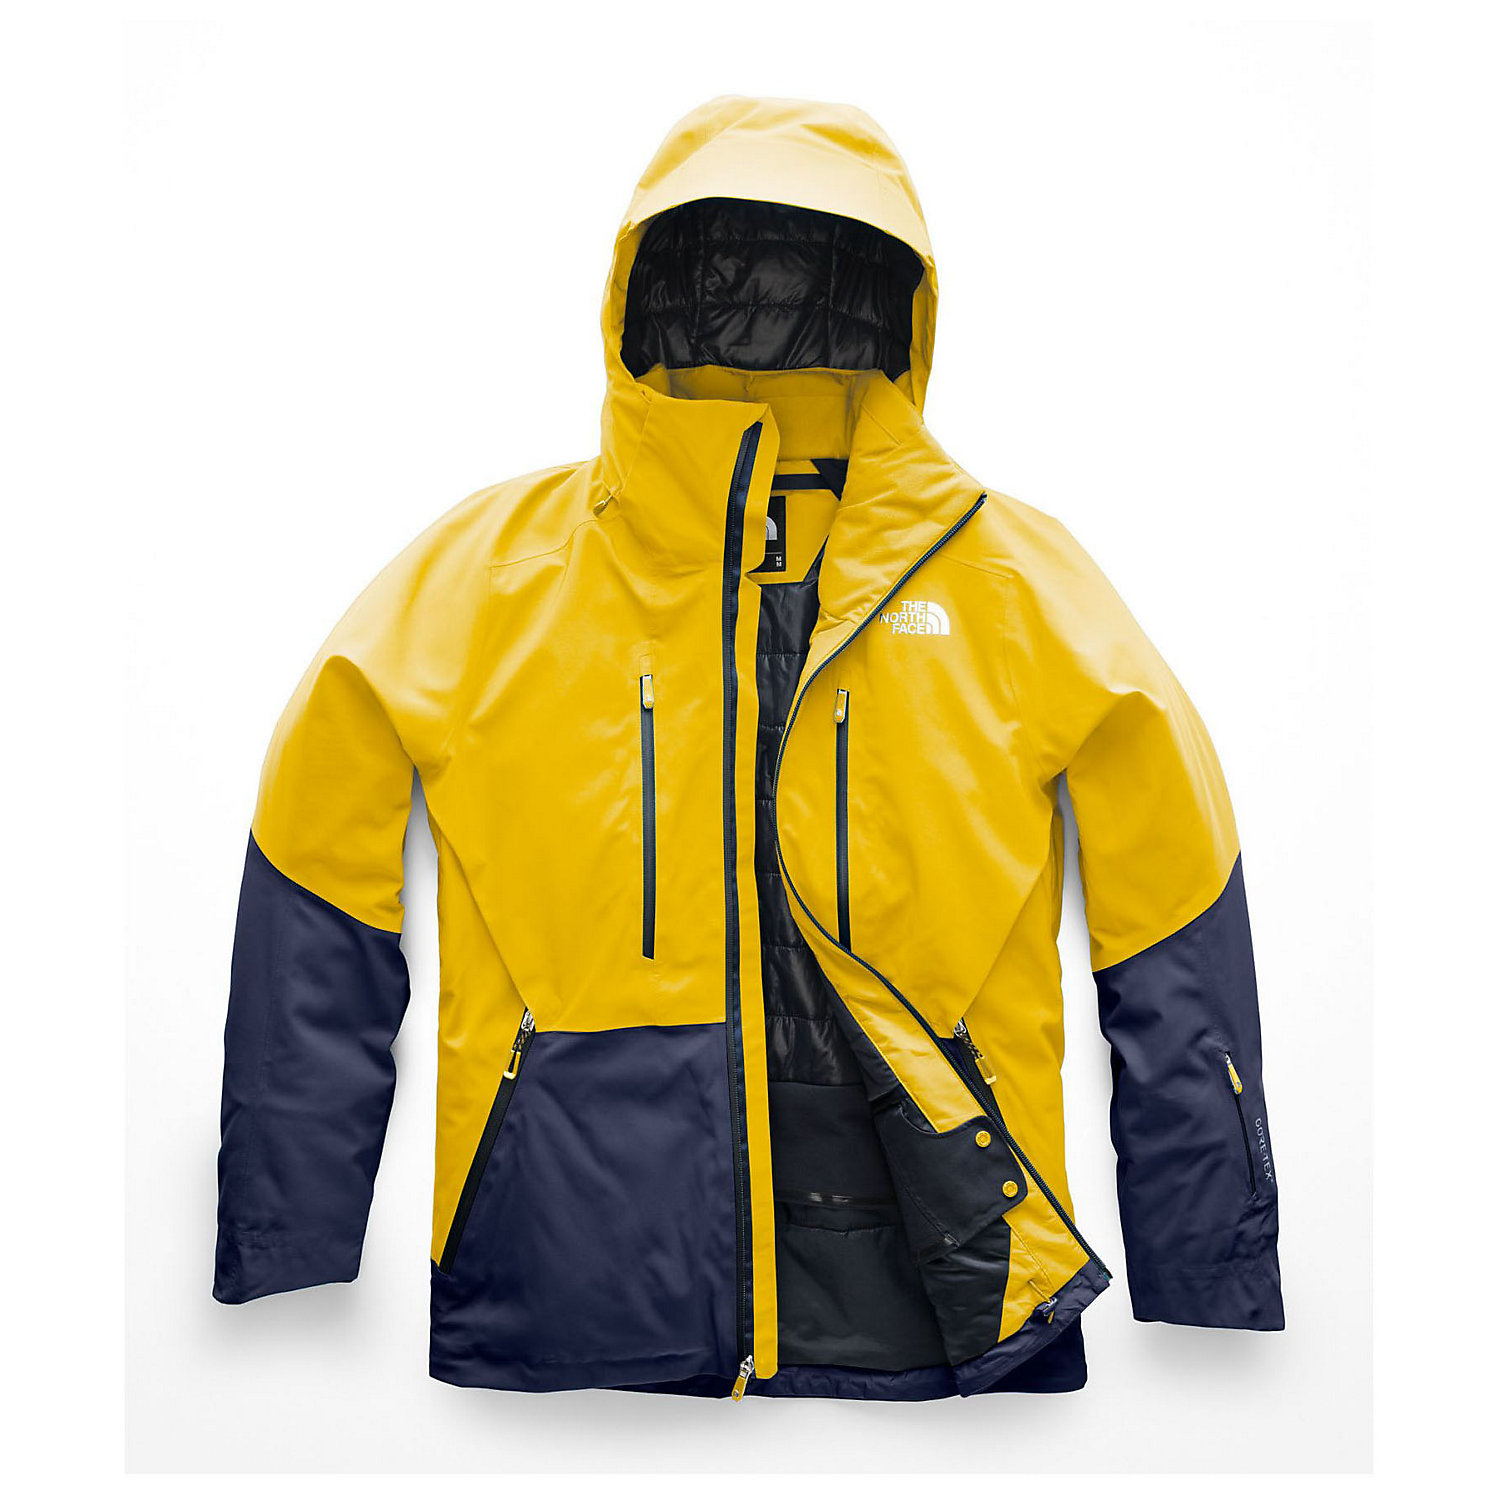 f347d1037fde The North Face Men s Anonym Jacket - Moosejaw